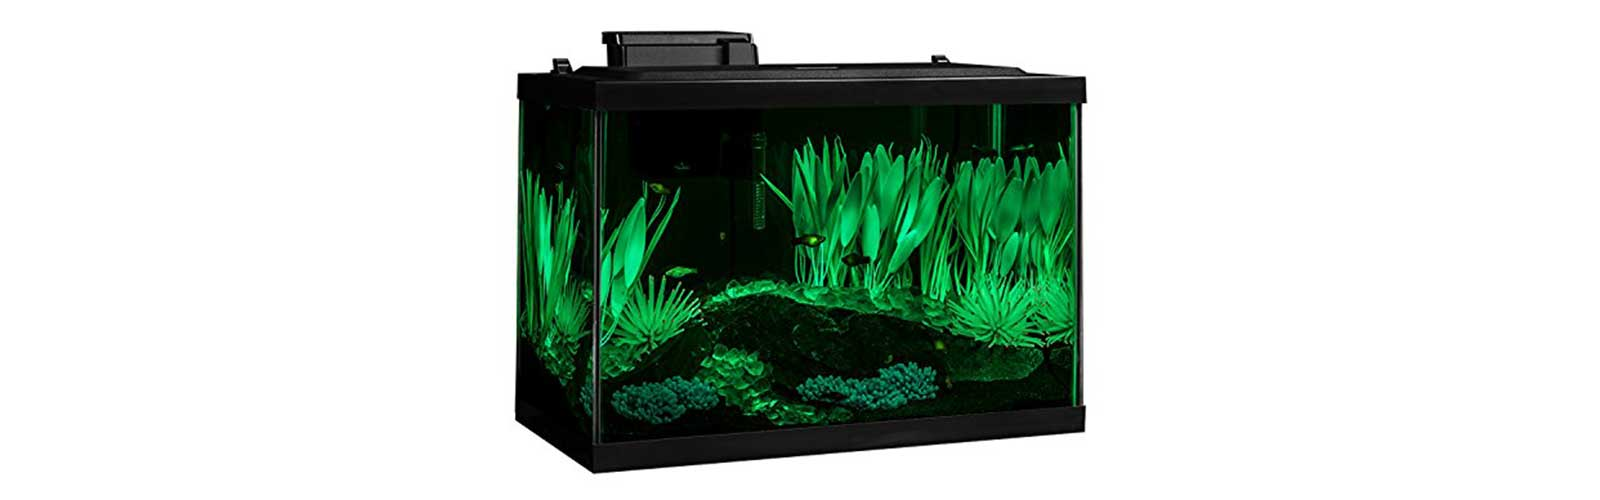 The best starter aquarium kits of 2018 beginner basics for 20 gallon fish tank kit